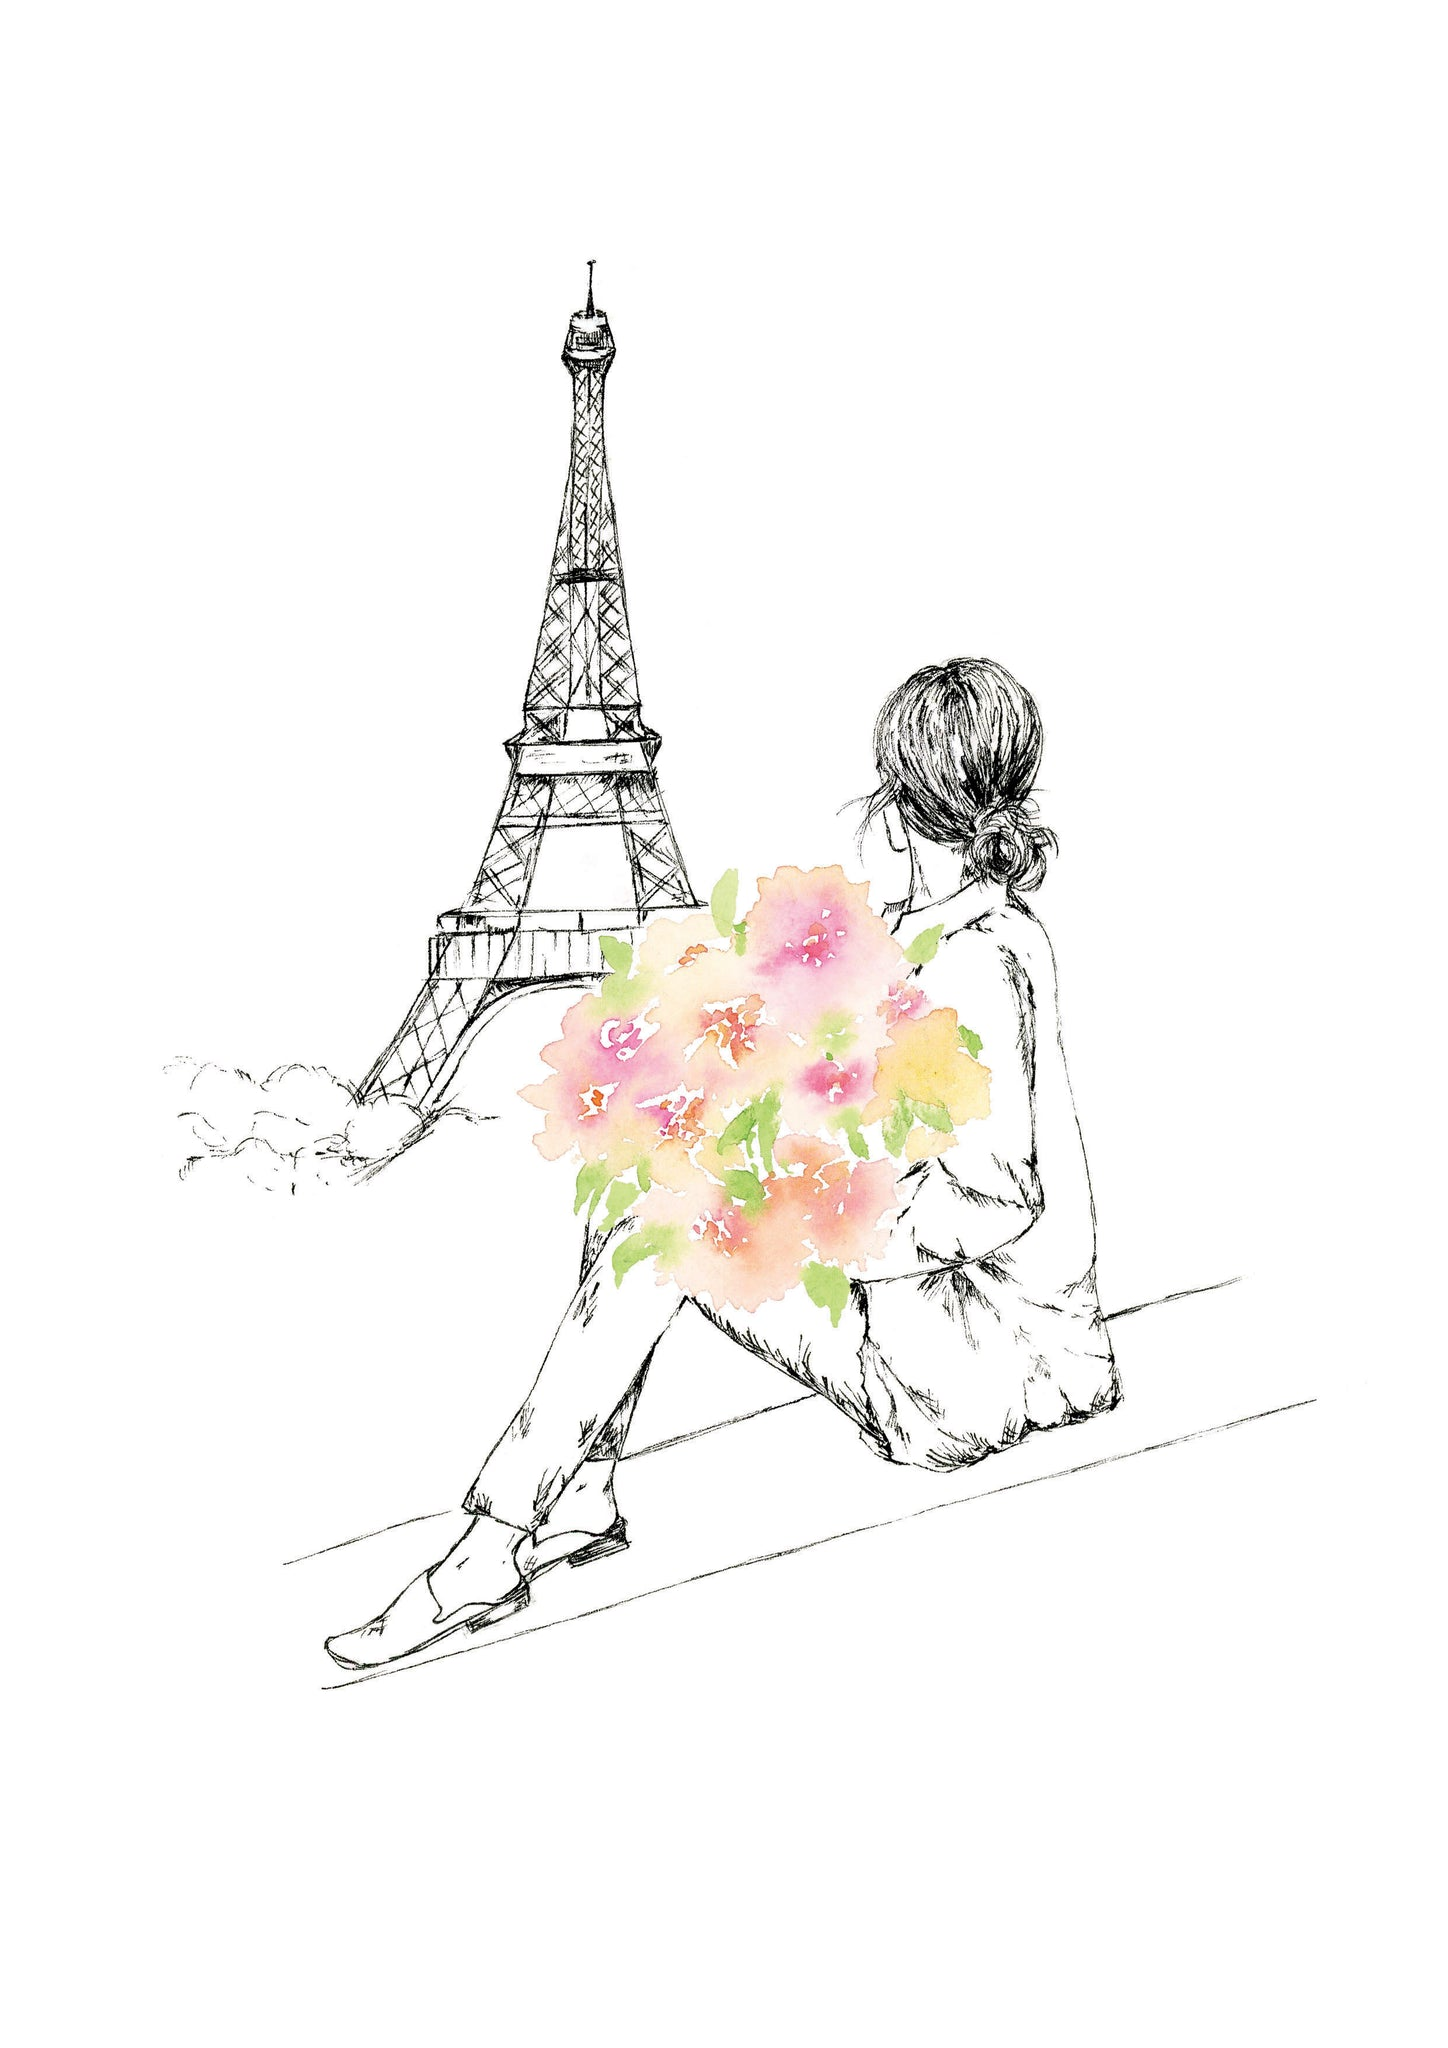 Watercolour art print of a woman with a floral bouquet looking at the Eiffel Tower, by For My Dearest.